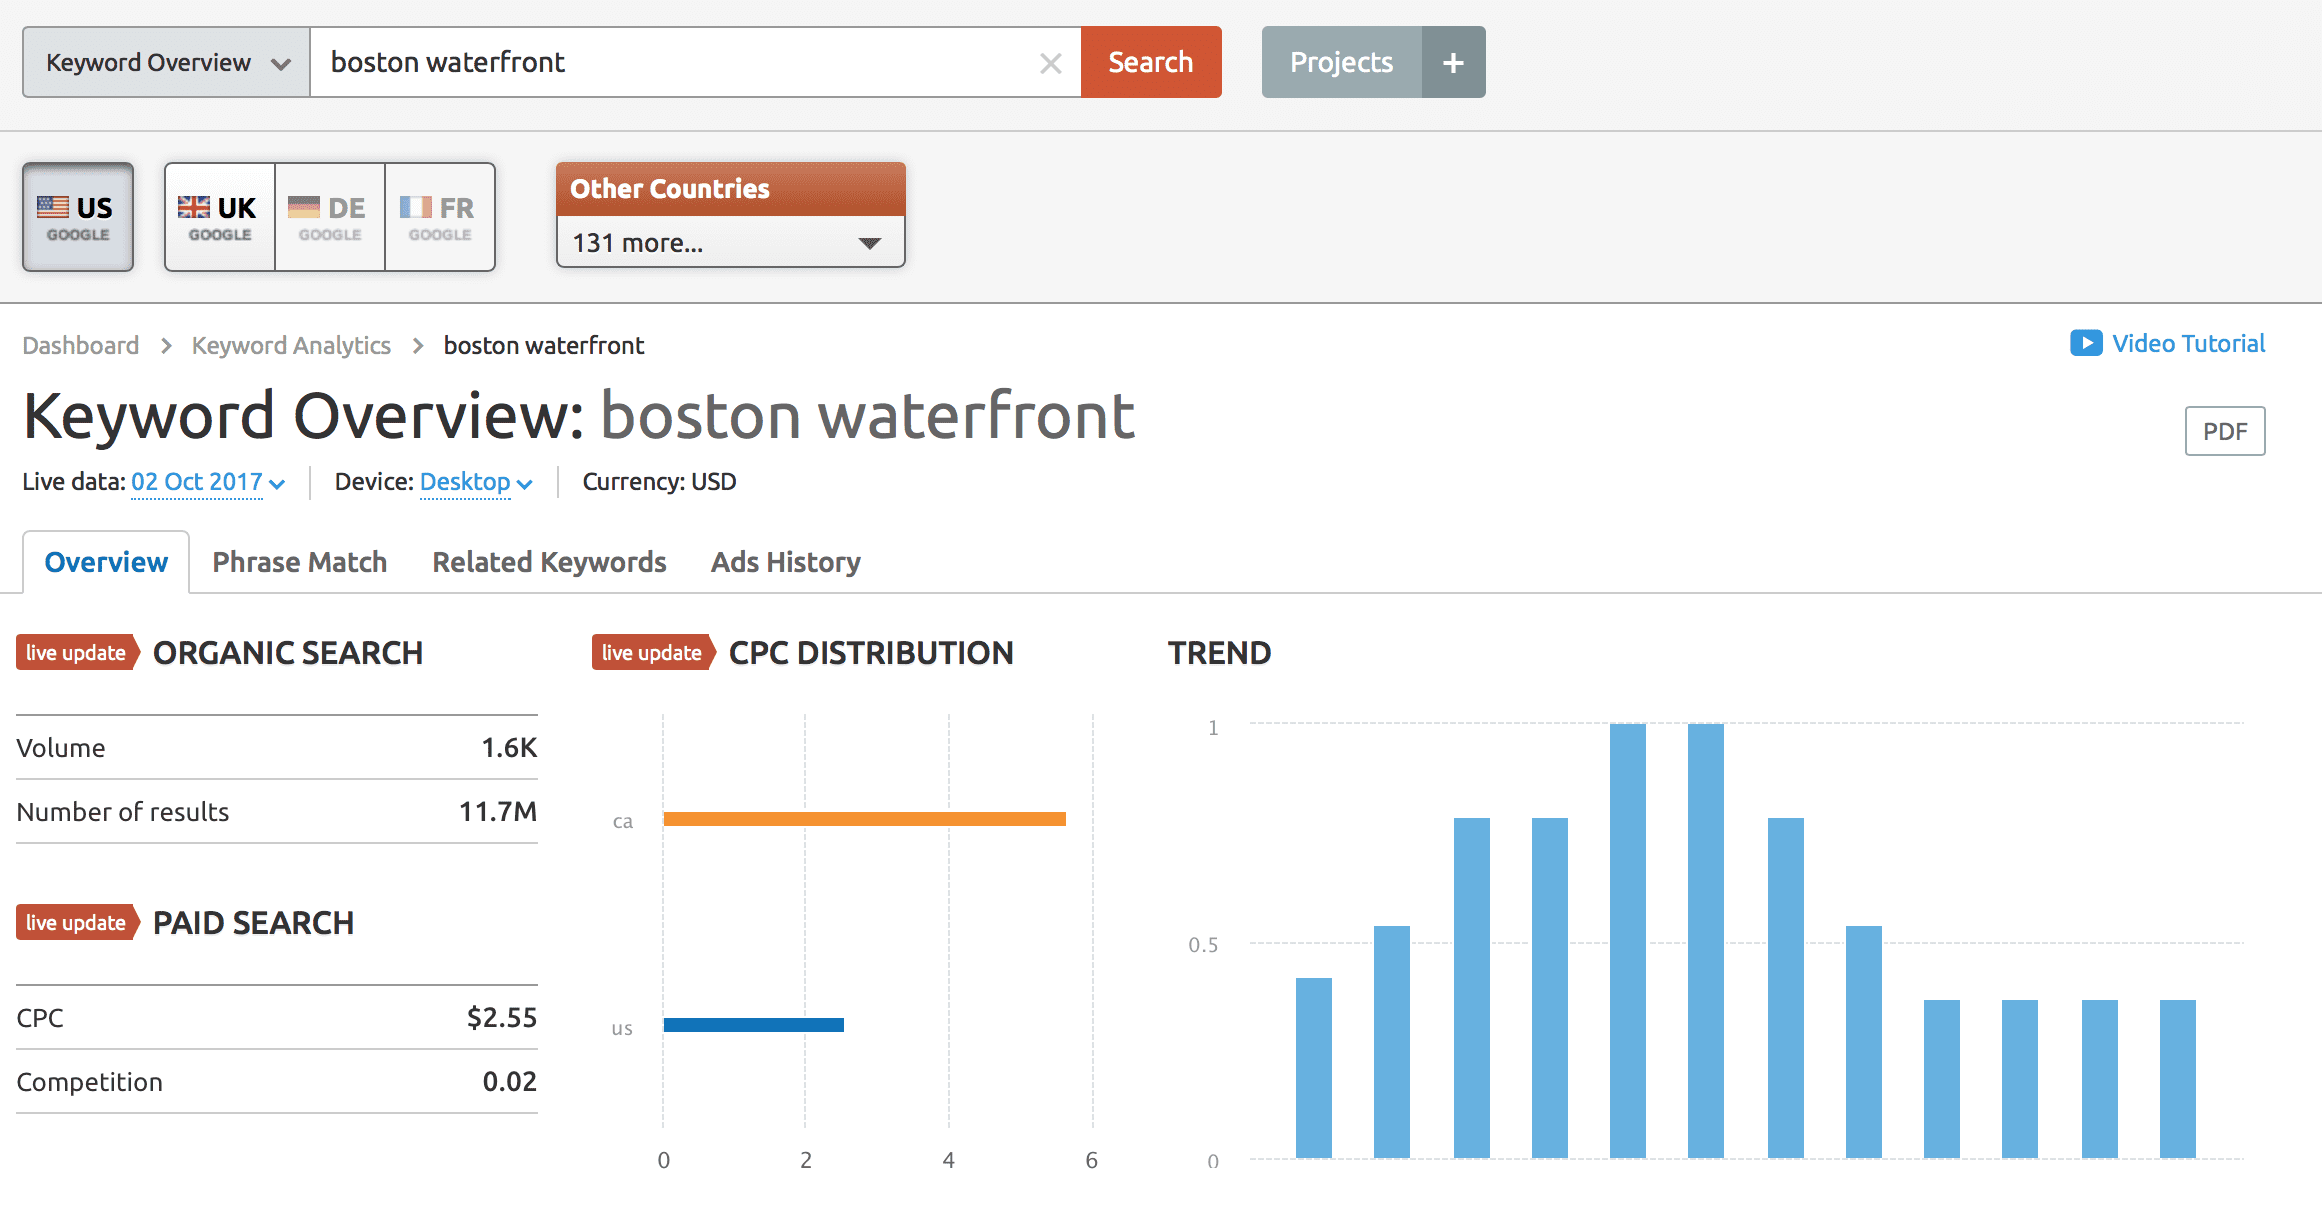 Using the SEMRush Keyword Tool, data is returned relating to search term boston waterfront